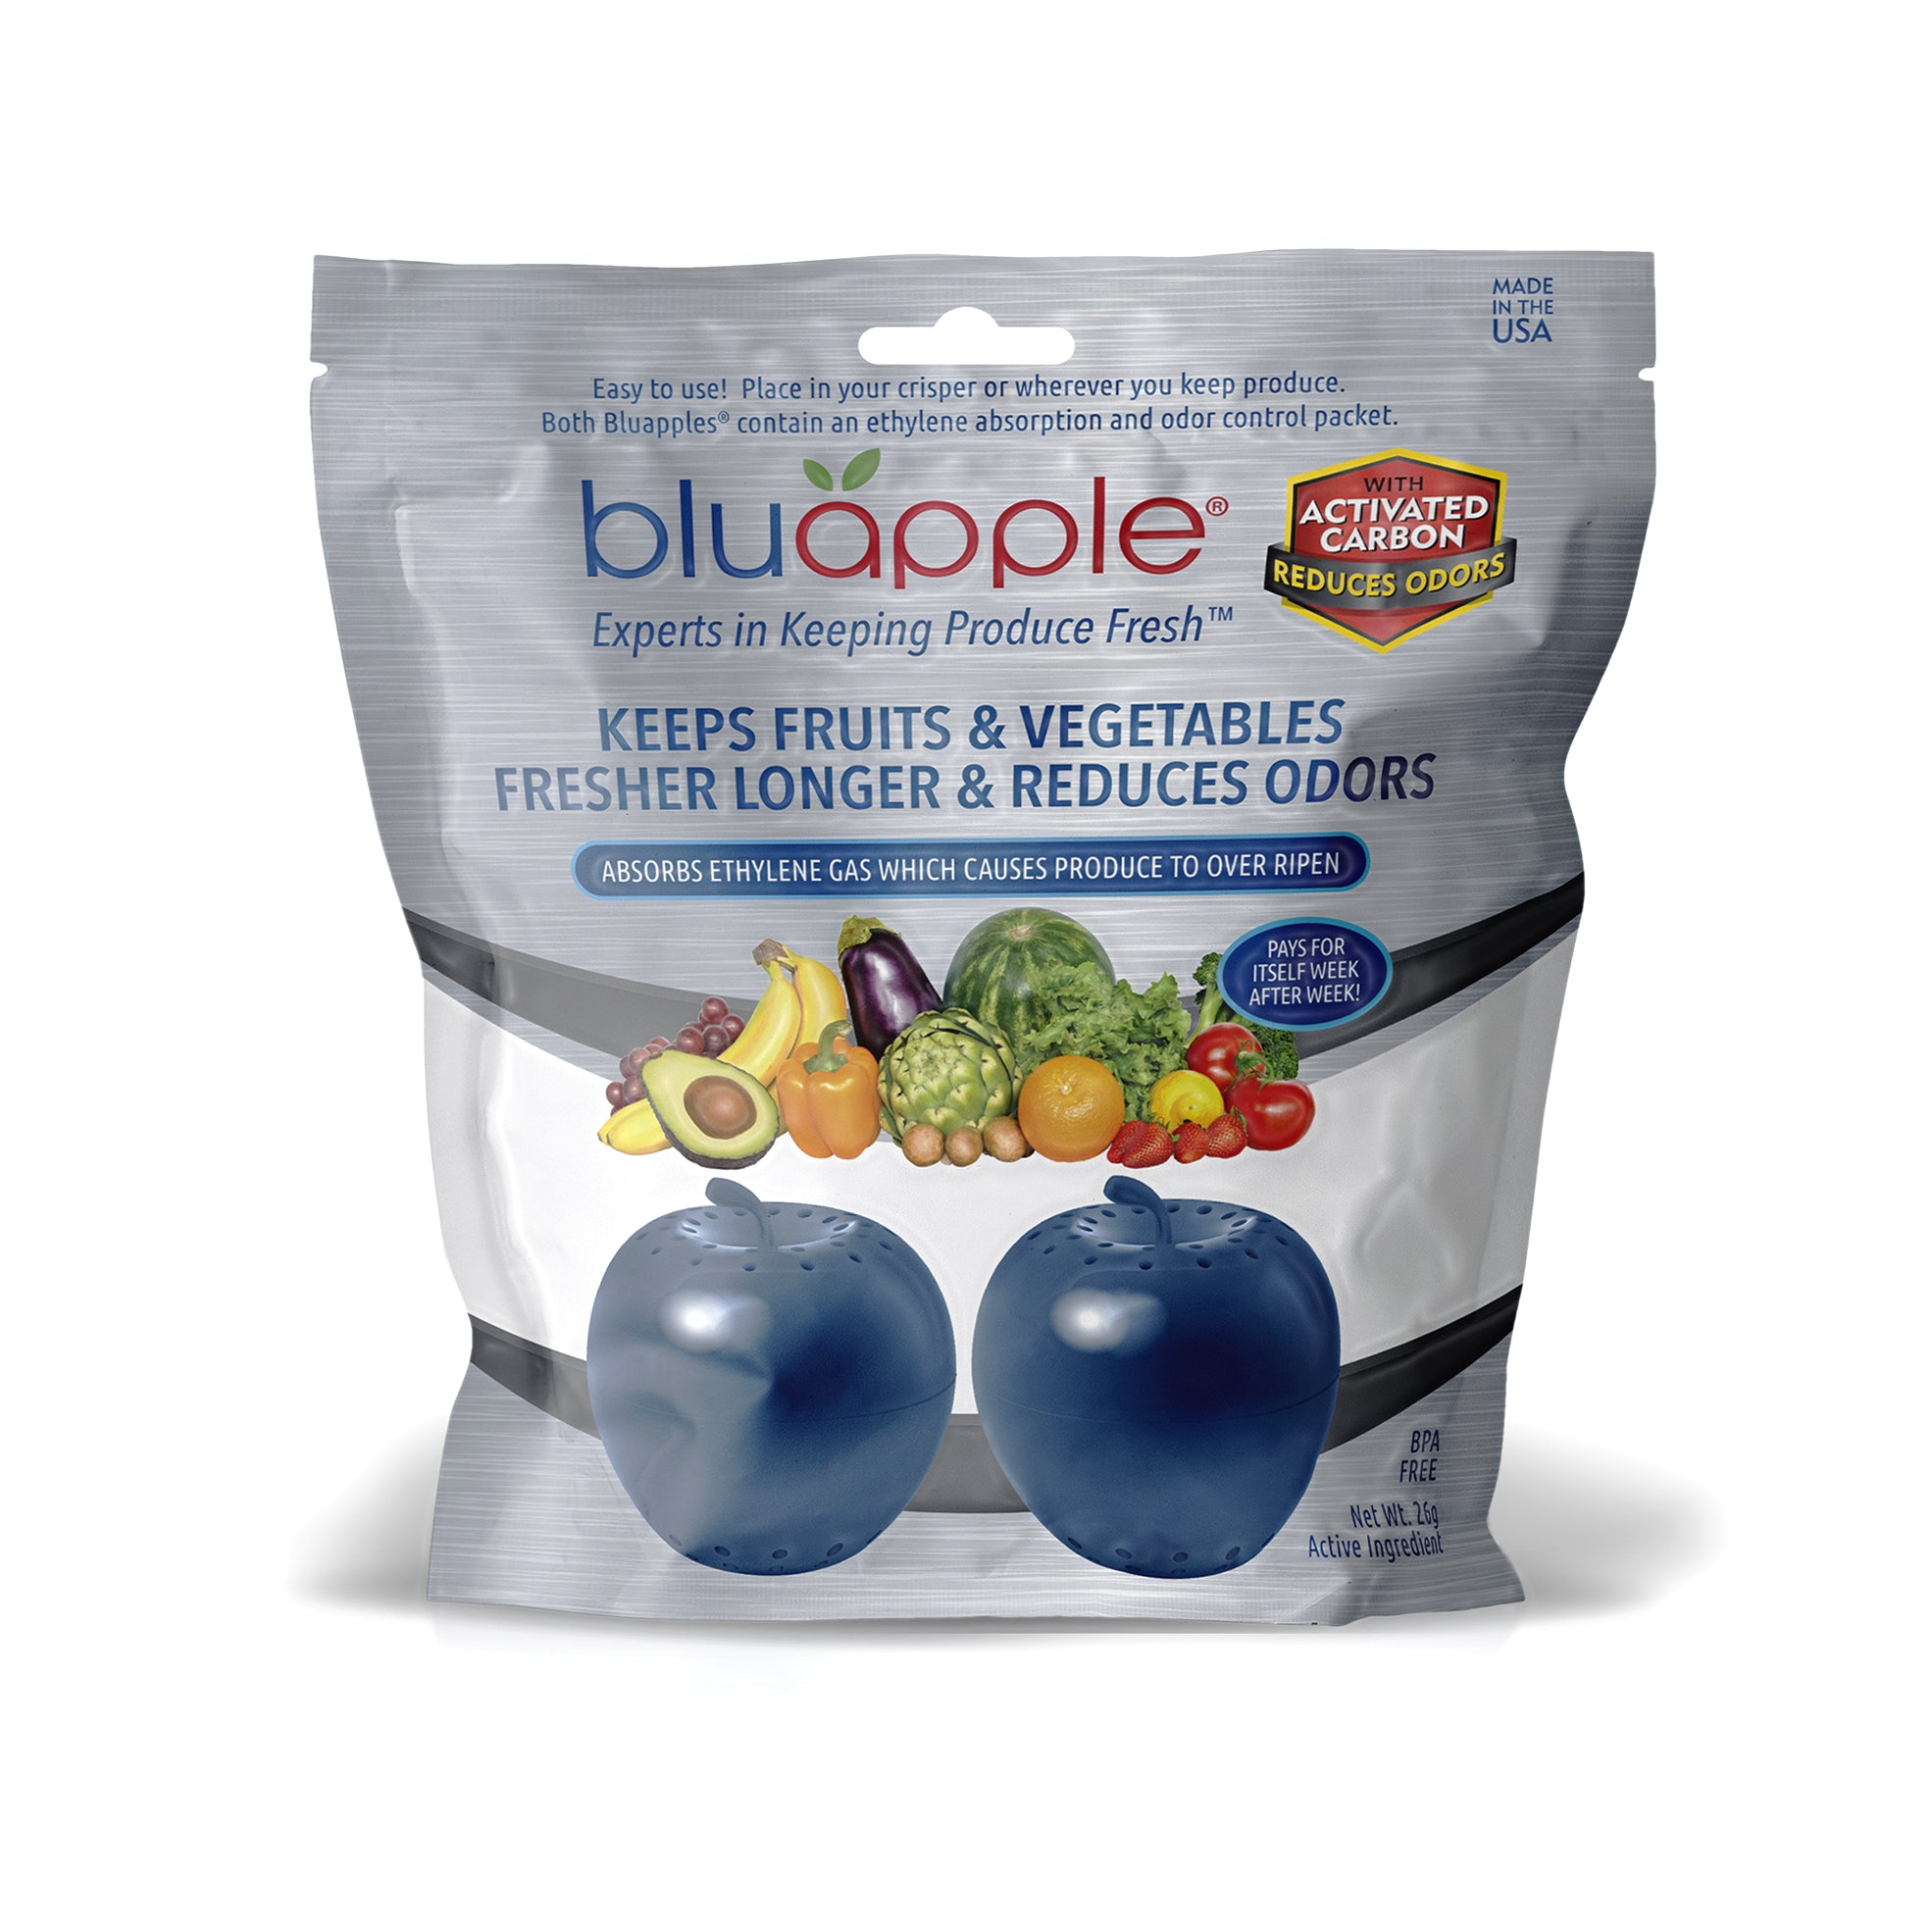 Bluapple® 2-Pack with Activated Carbon